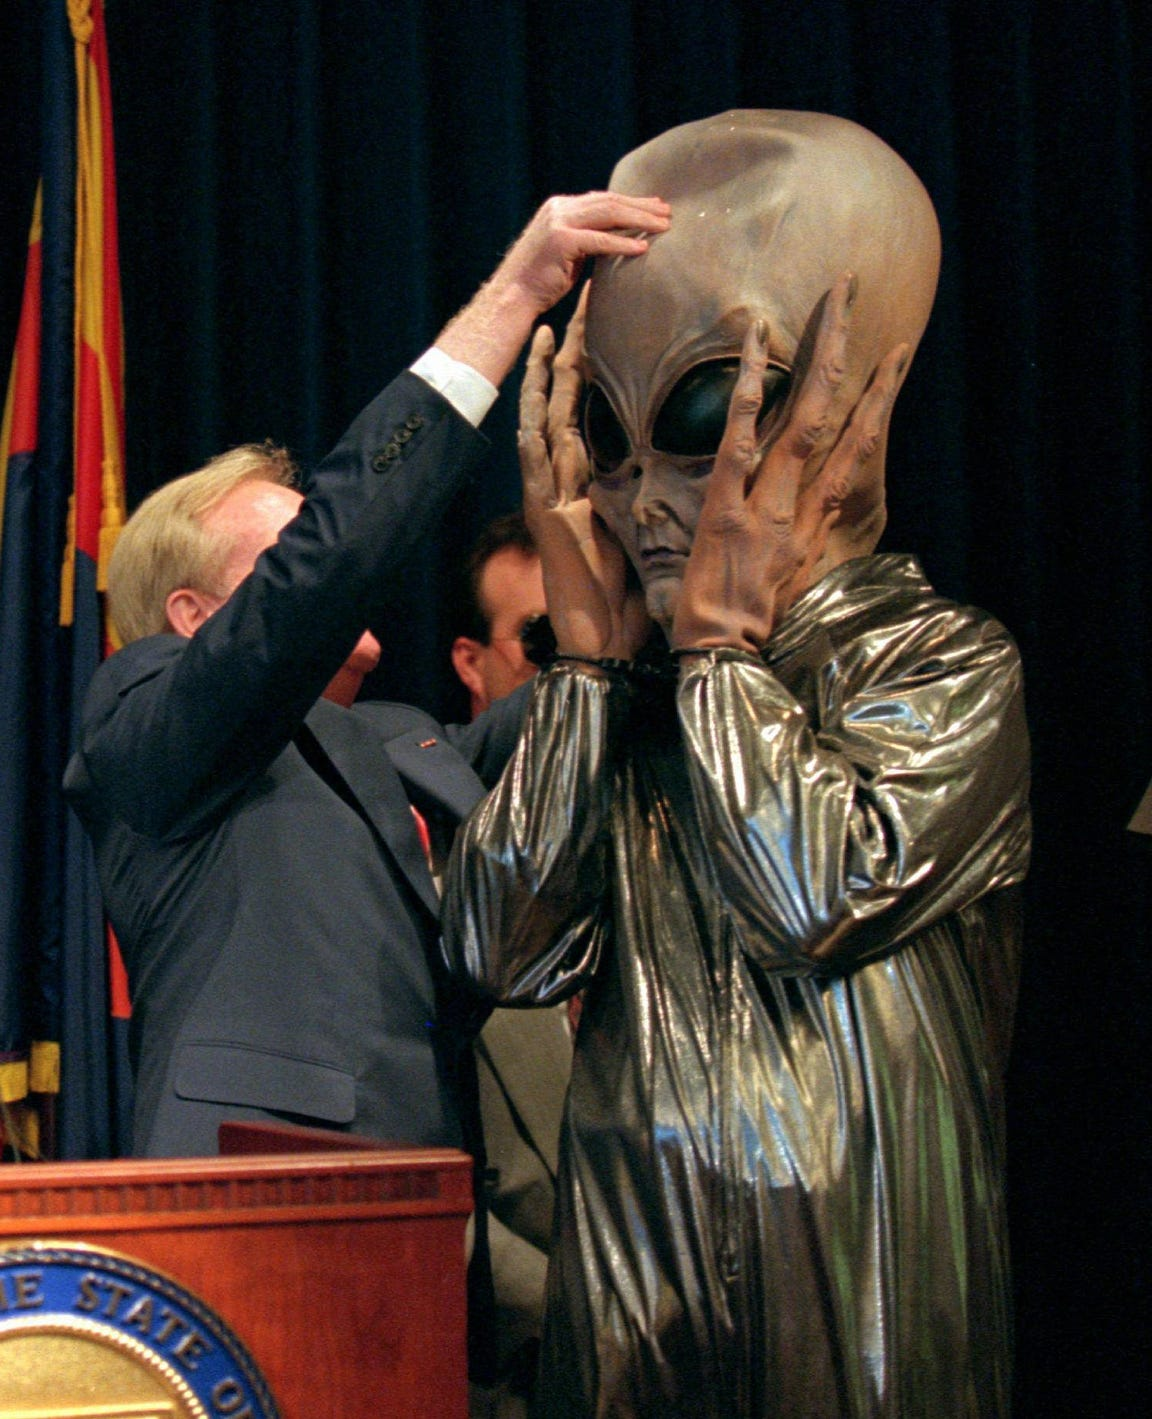 Arizona Gov. Fife Symington pulls an alien mask off  aide Jay Heiler during a news conference at the state capitol on June 19, 1997.  Symington, earlier in the day, said he would order the Arizona Department of Public Safety to look into the mysterious lights seen over Phoenix, but later insisted he was joking.